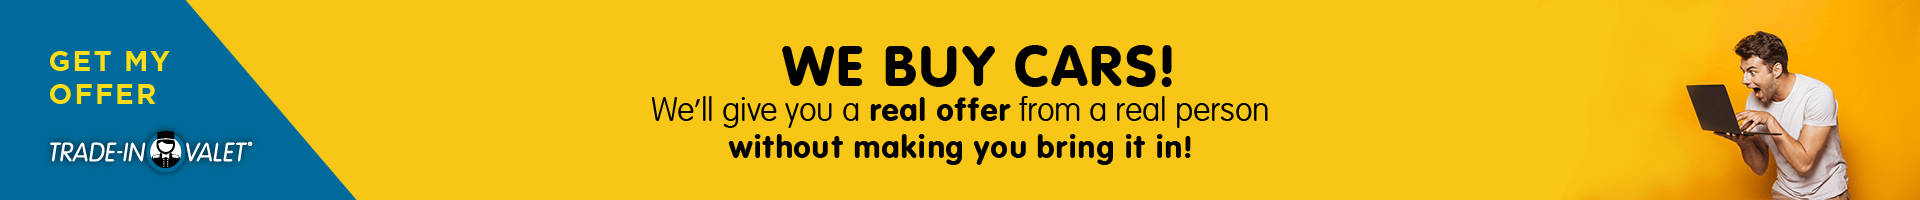 We Want to Buy Your Car! We'll give you a real offer from a real person without making you bring it in! - Get My Offer - Trade in Valet